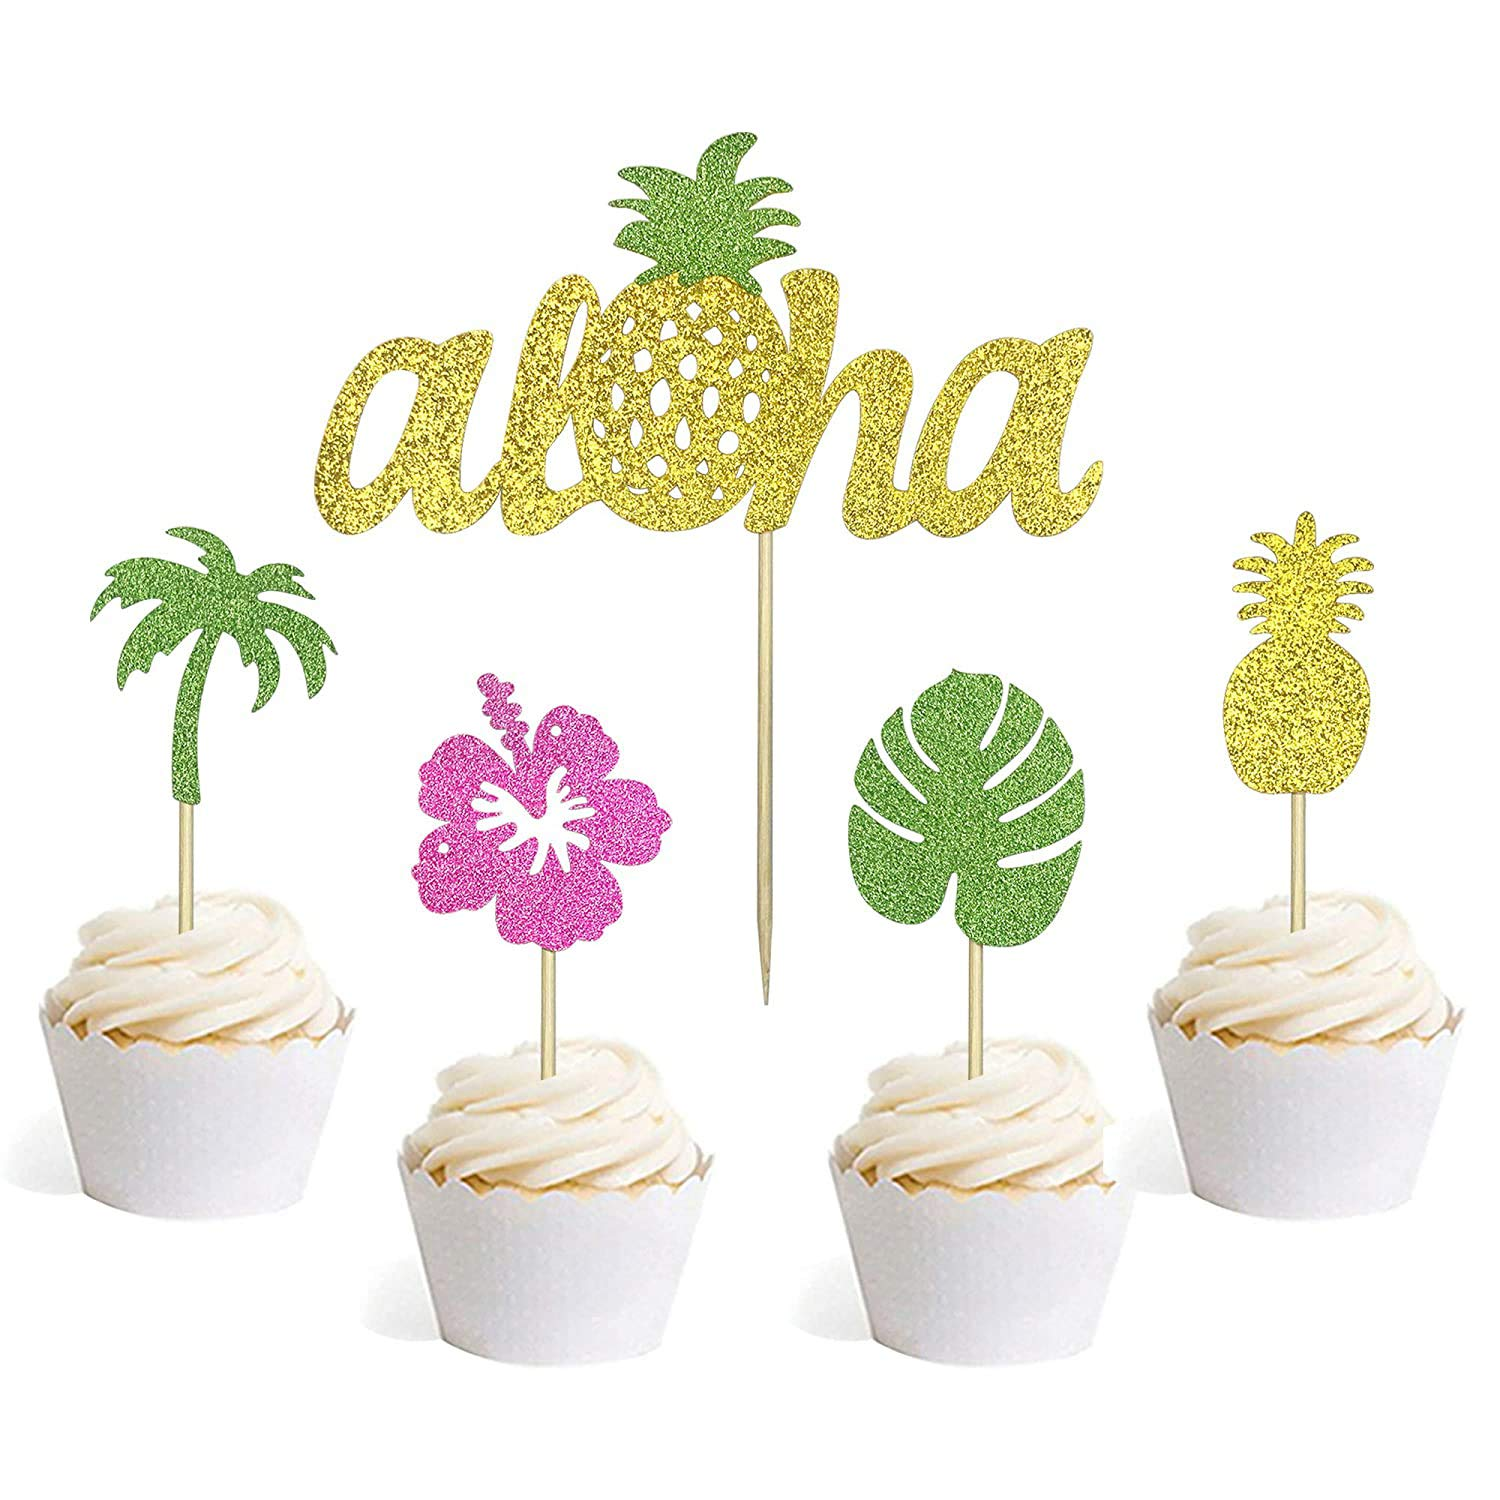 37 PCS Summer Cupcake Toppers Palm Leaves Pineapple Hawaiian Flower Coconut Tree Cake Topper Picks for Baby Shower Wedding Birthday Tropical Luau Summer Party Decorations